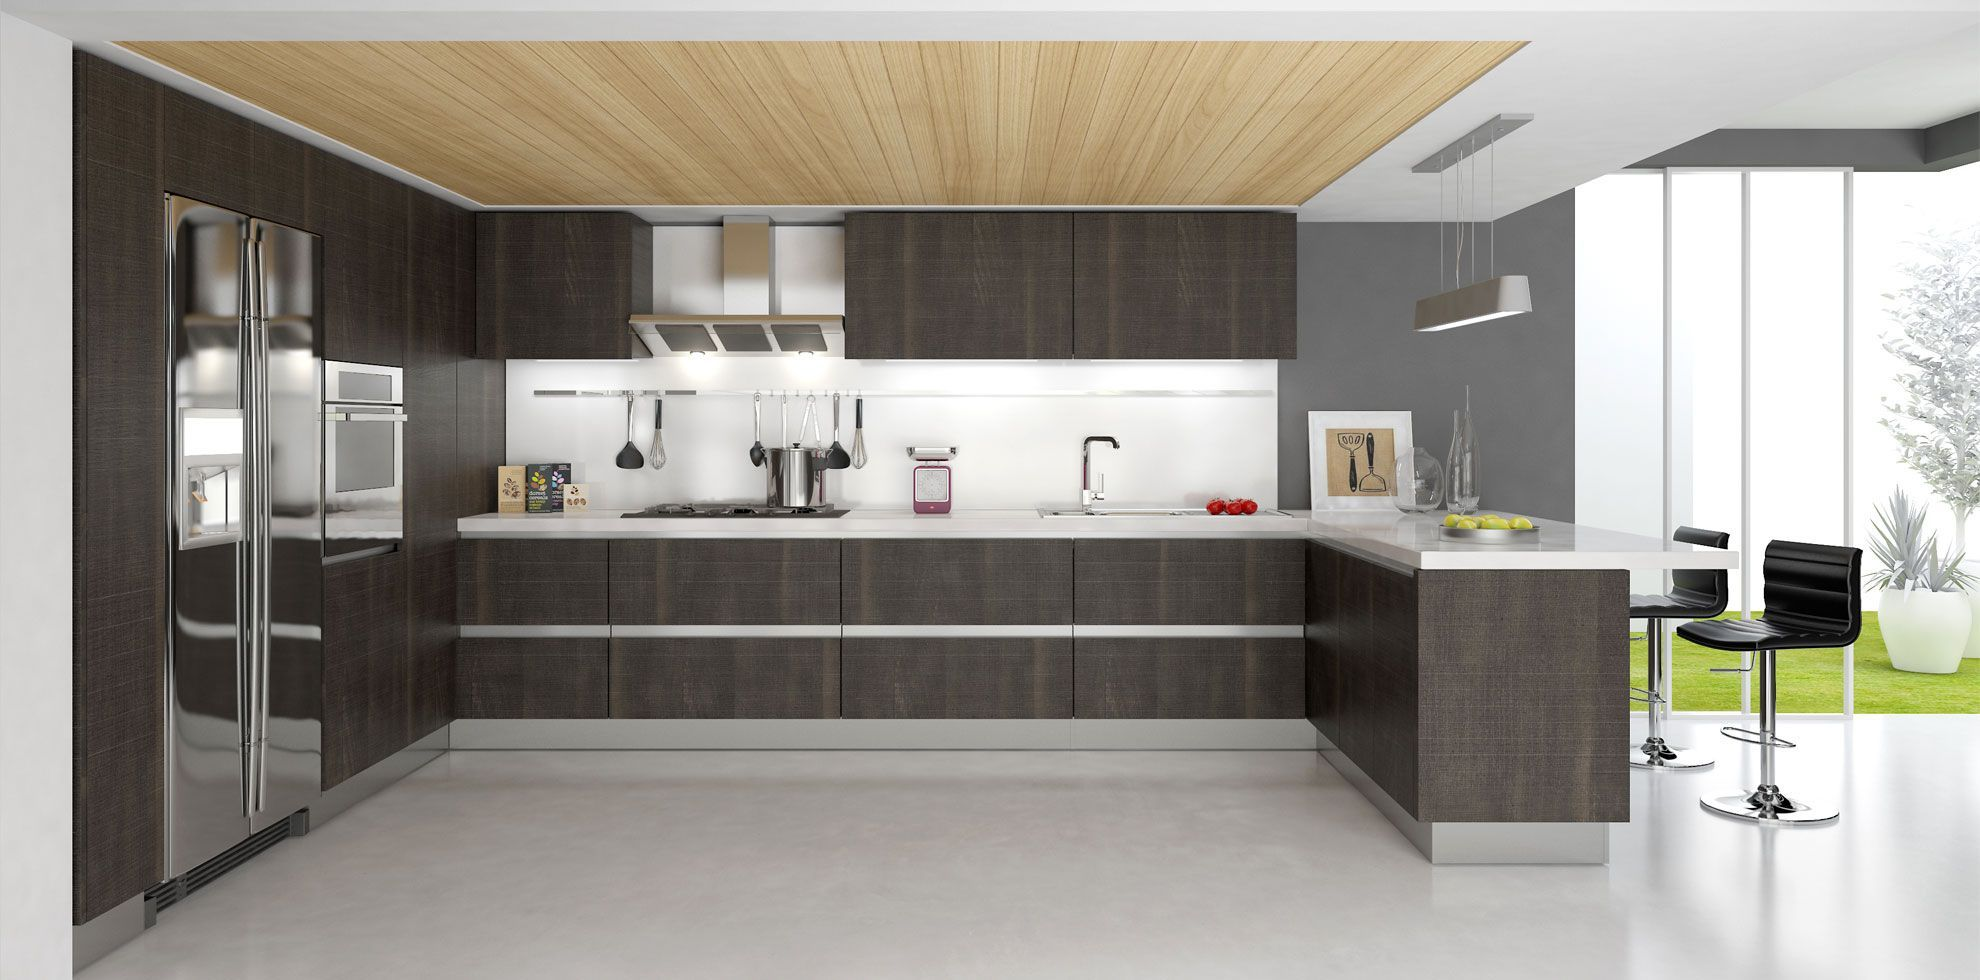 20 Prime Examples Of Modern Kitchen Cabinets Modern Kitchen Cabinet Design Contemporary Kitchen Design Contemporary Kitchen Cabinets